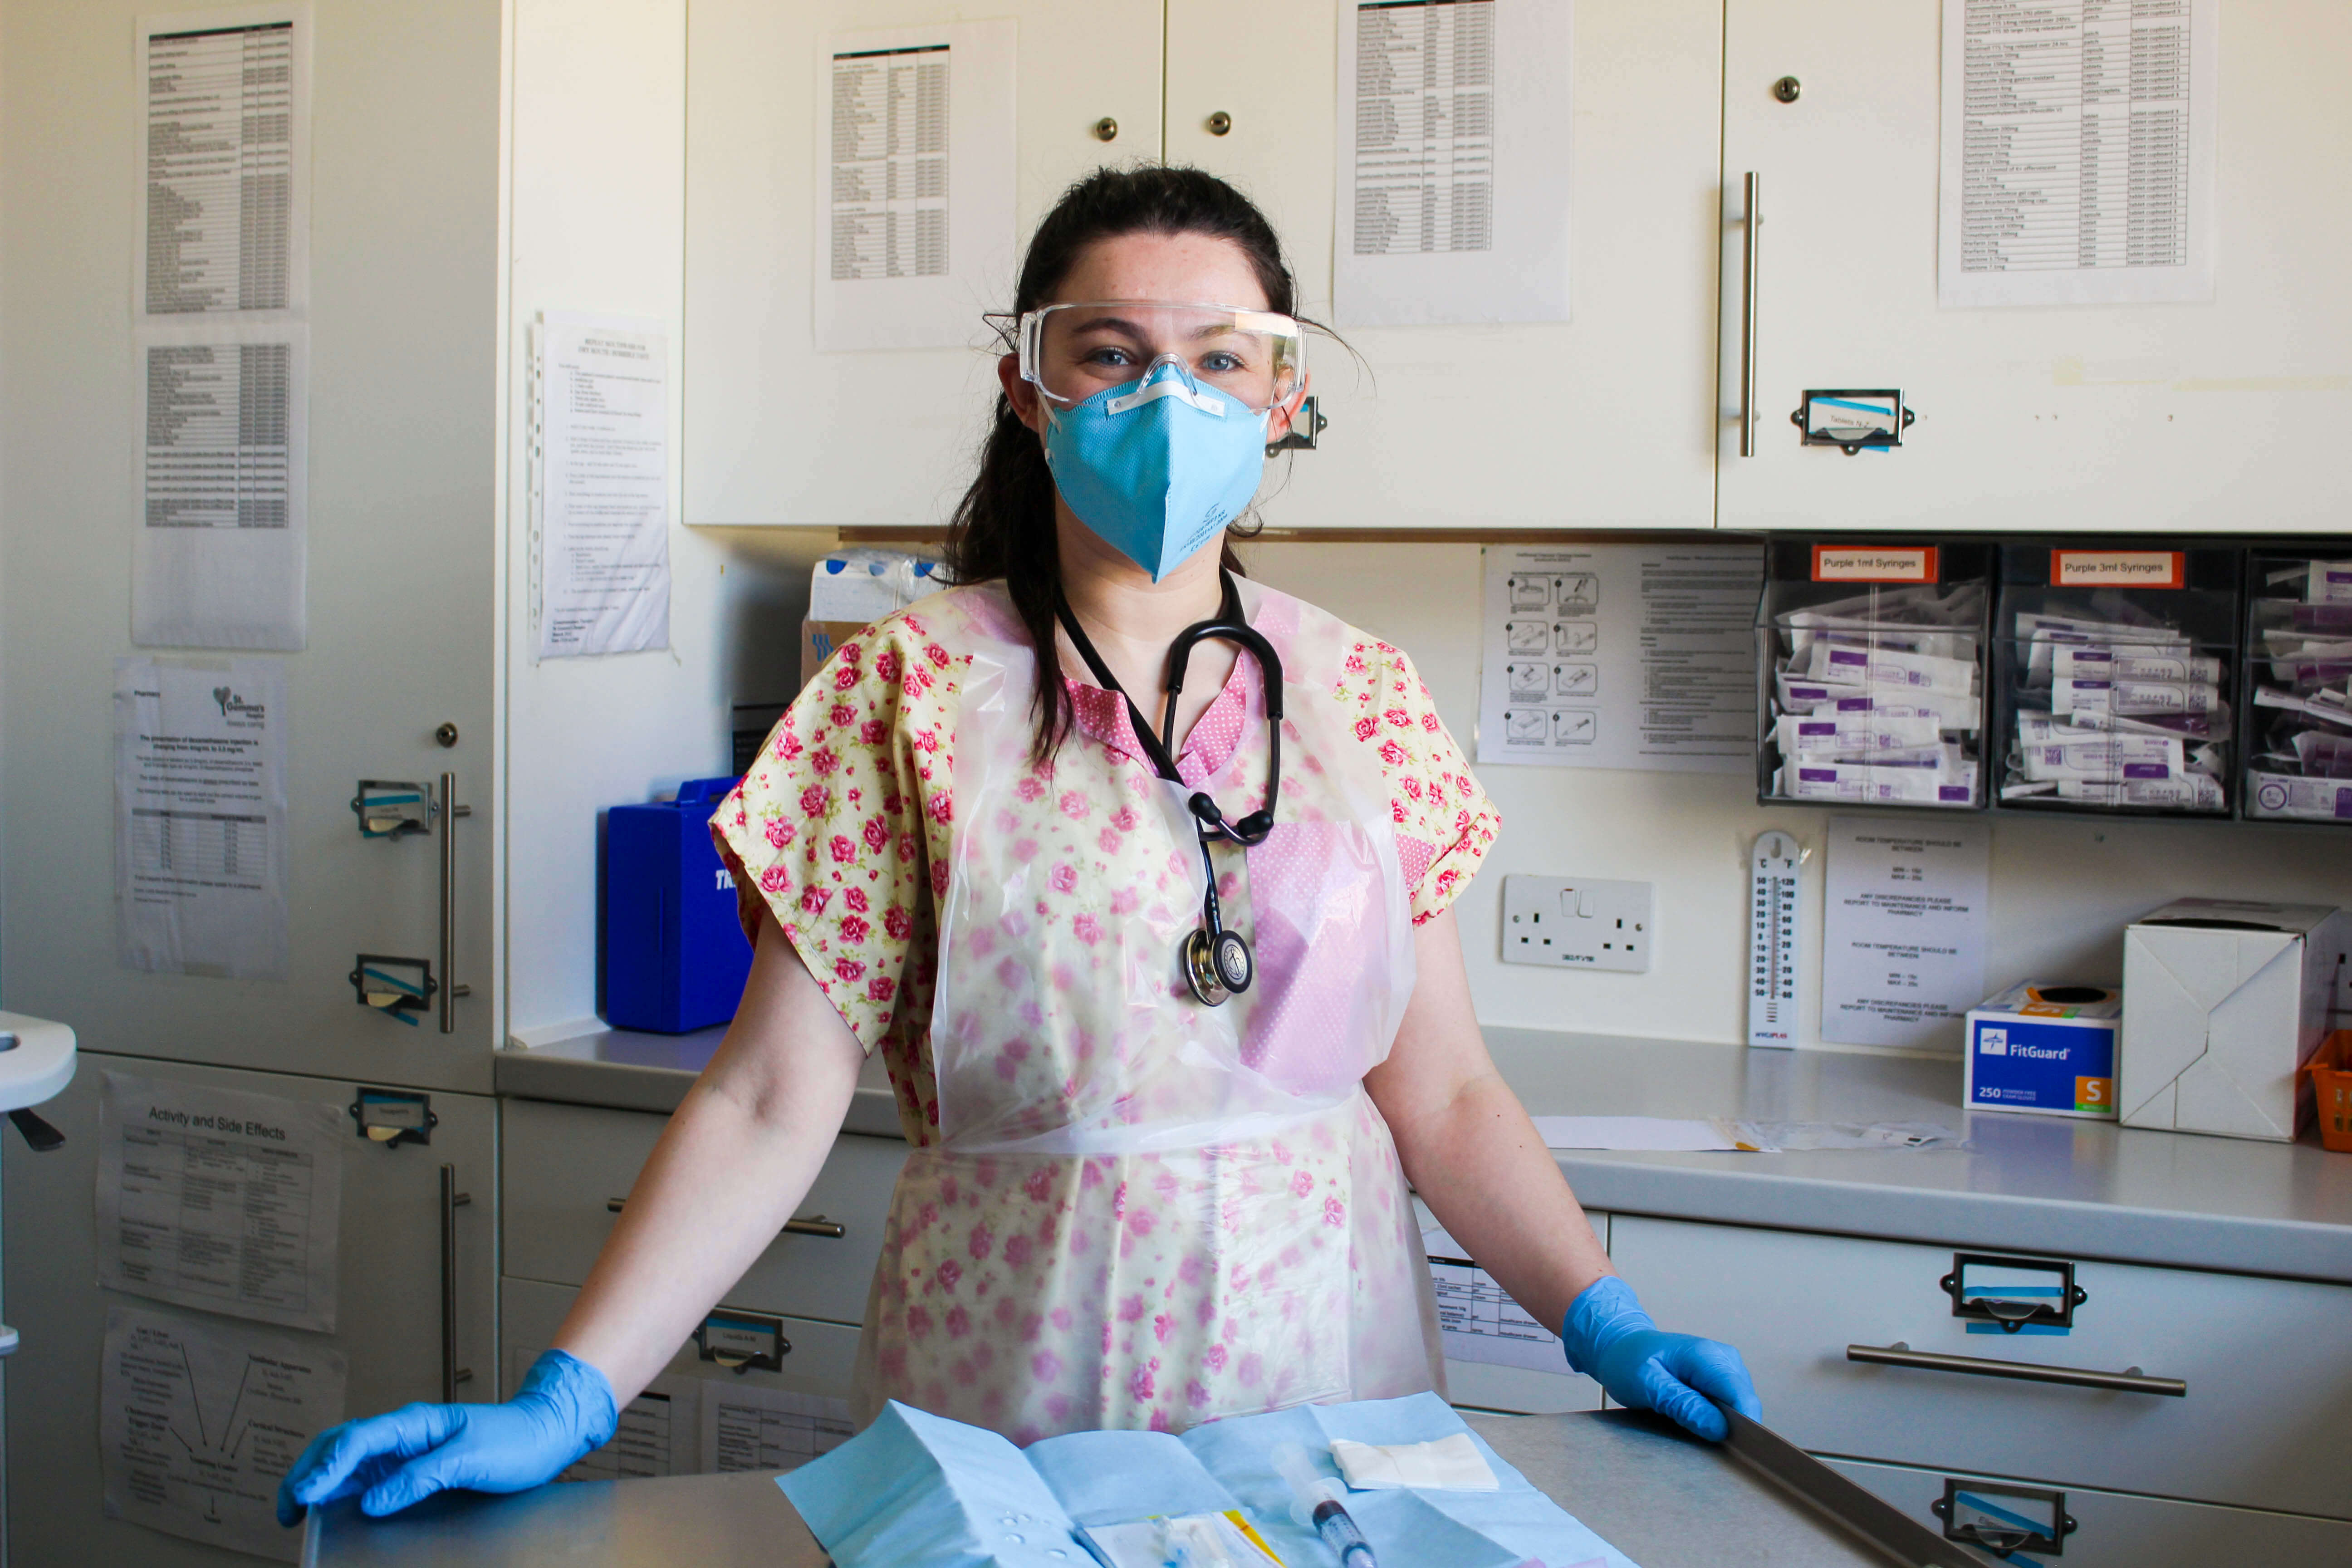 Healthcare worker wearing personal protective equipment of goggles, face mask, plastic apron and gloves.